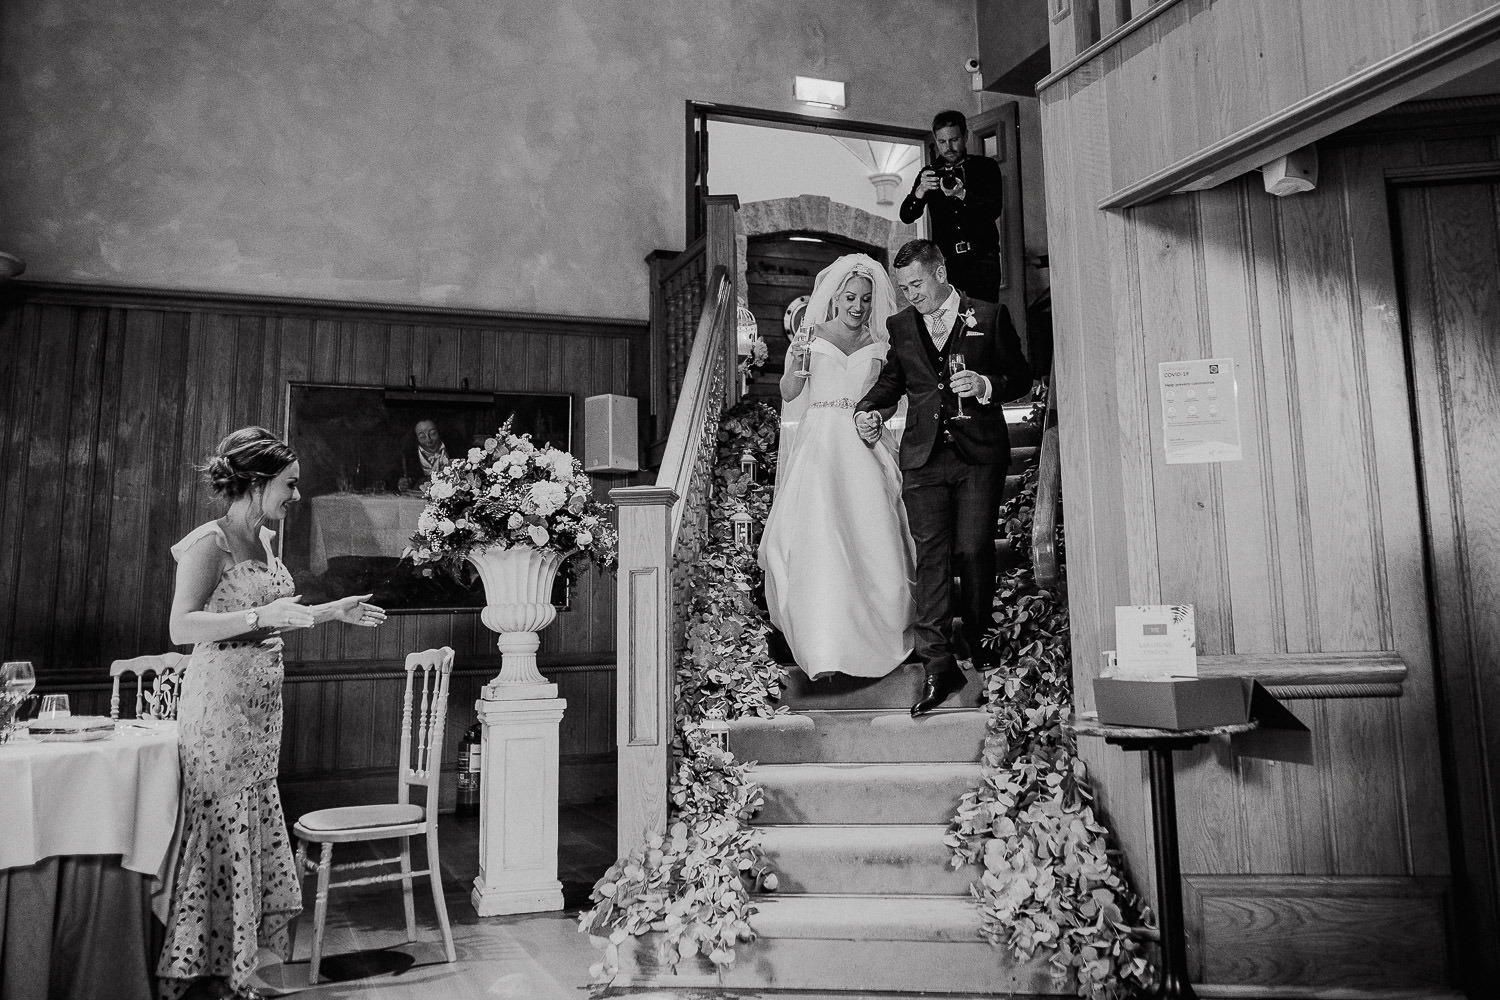 bride and groom walking down a stair case